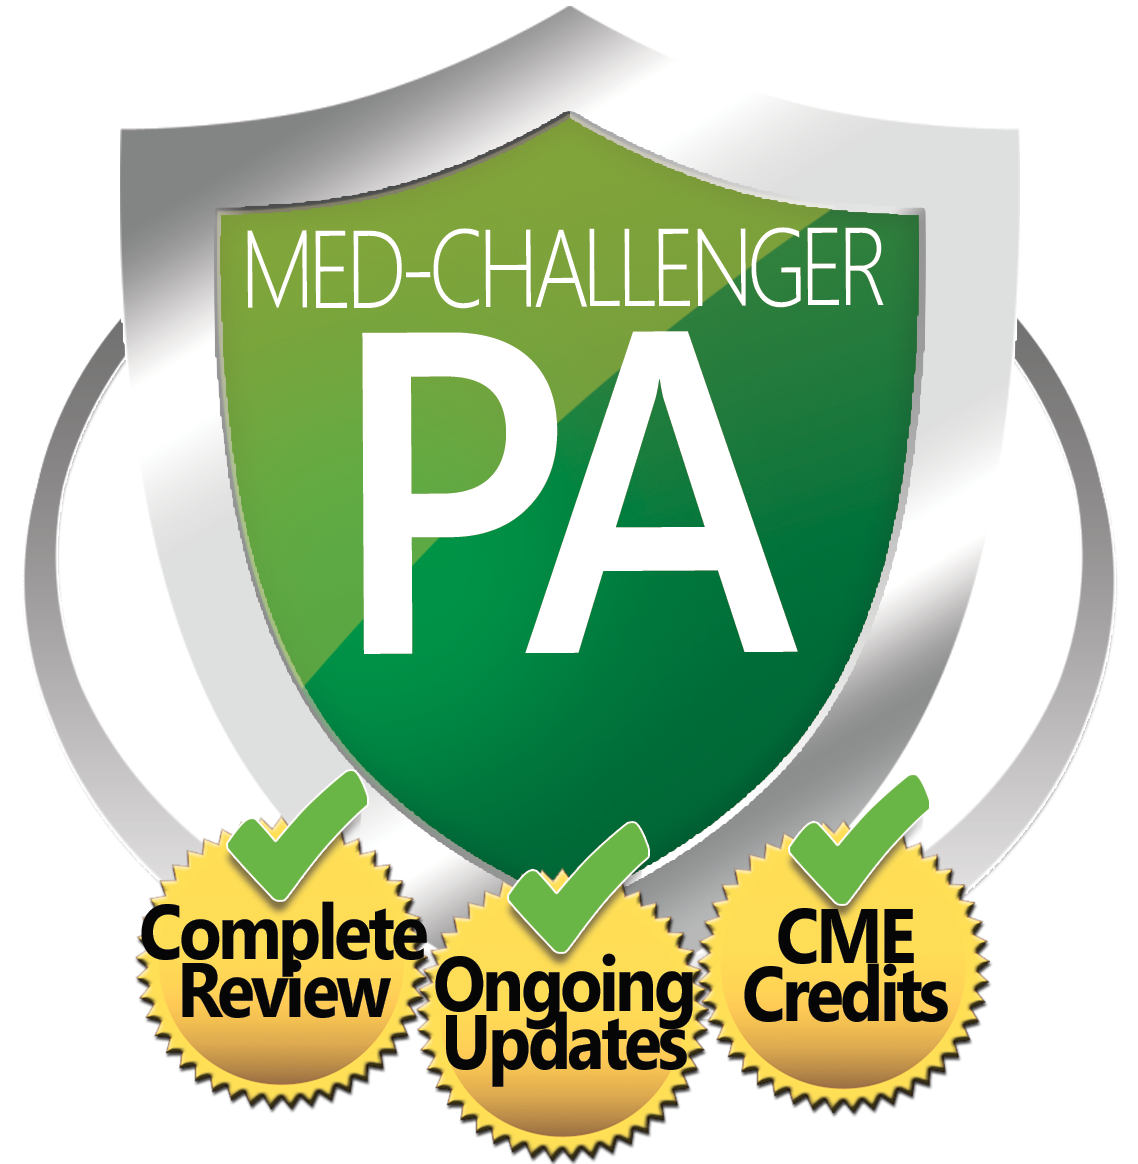 Physician Assistant Board Exam, Med-Challenger PA